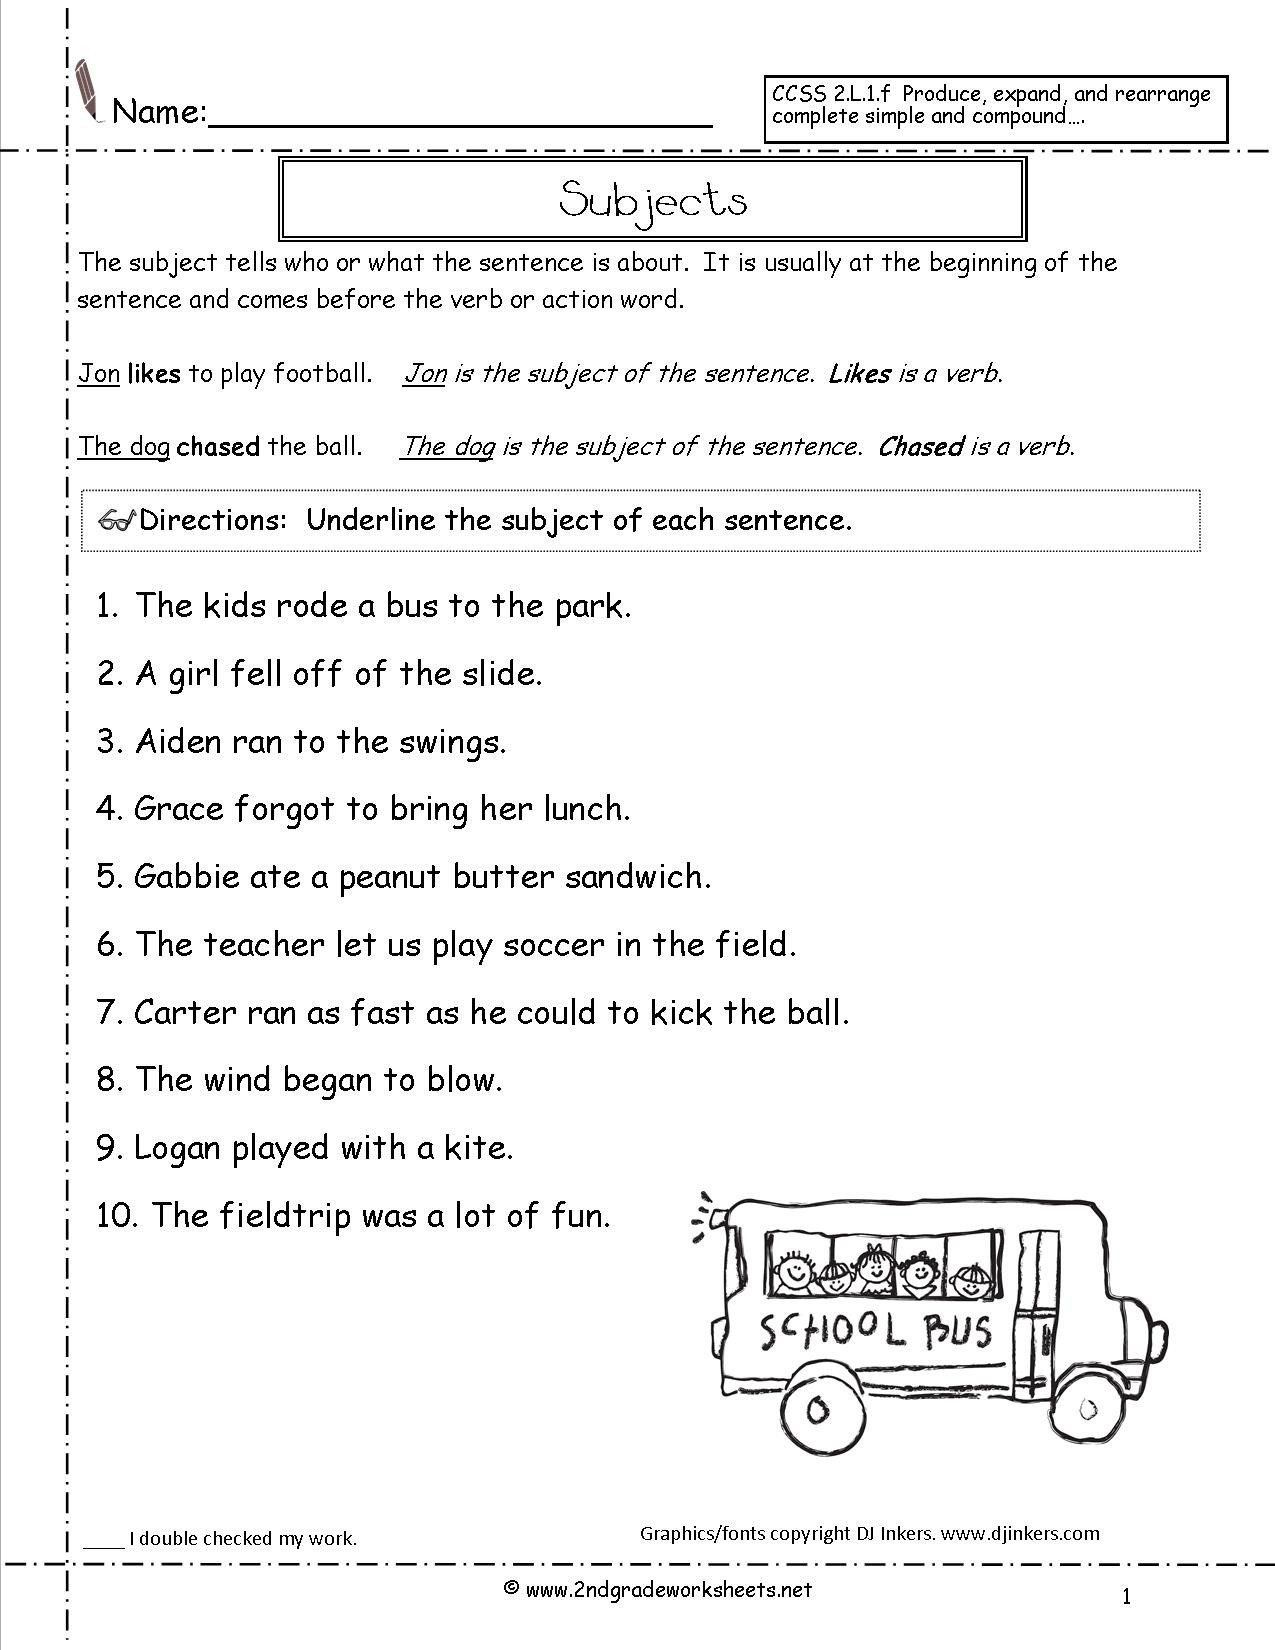 medium resolution of Subject Sentence Worksheets   Printable Worksheets and Activities for  Teachers